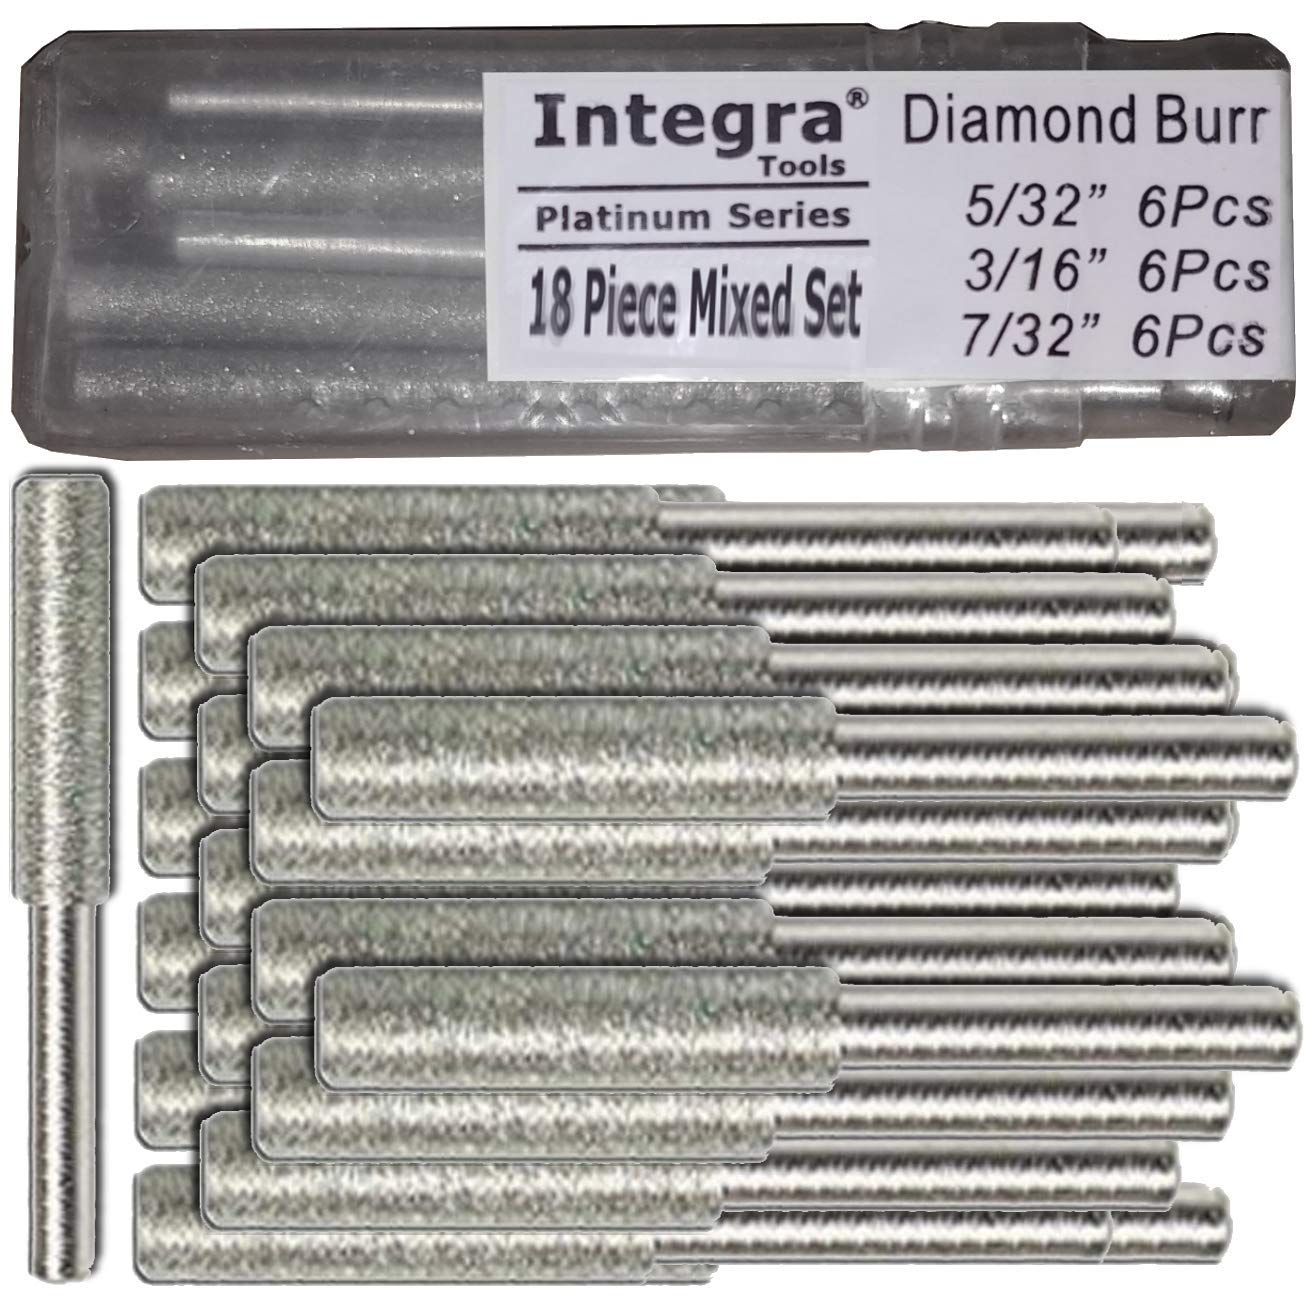 Integra Tools 5/32'' 3/16'' 7/32'' 18 Piece Mix Diamond Chainsaw Sharpener Burr 1/8'' Shank by Interga